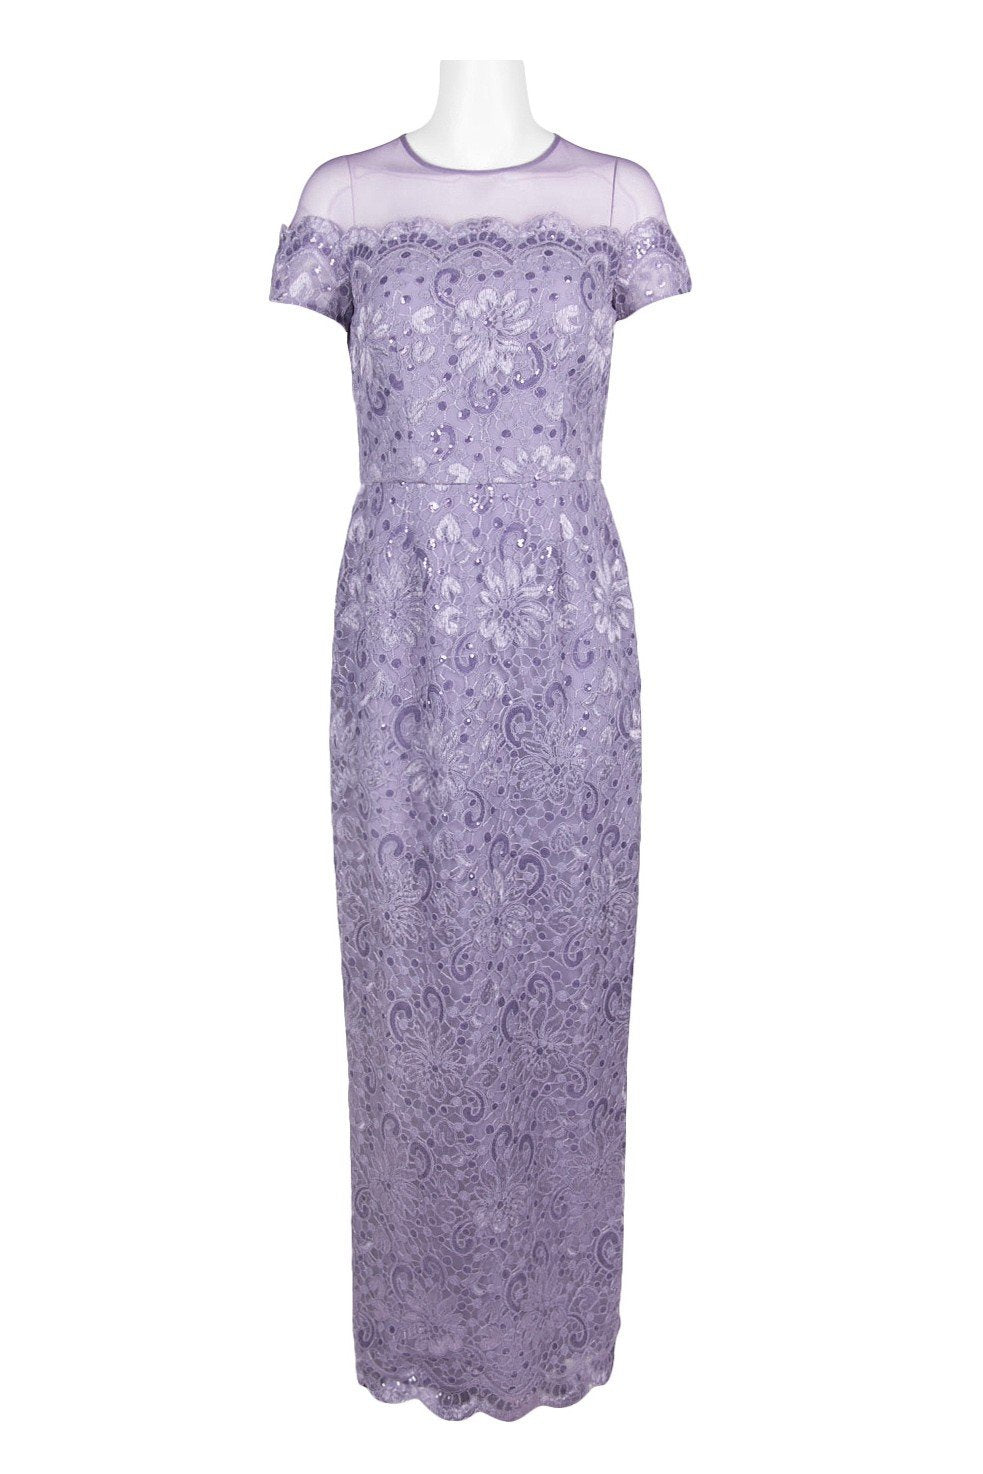 JS Collections - 866648 Illusion Floral Lace Embroidered Mesh Dress In Purple